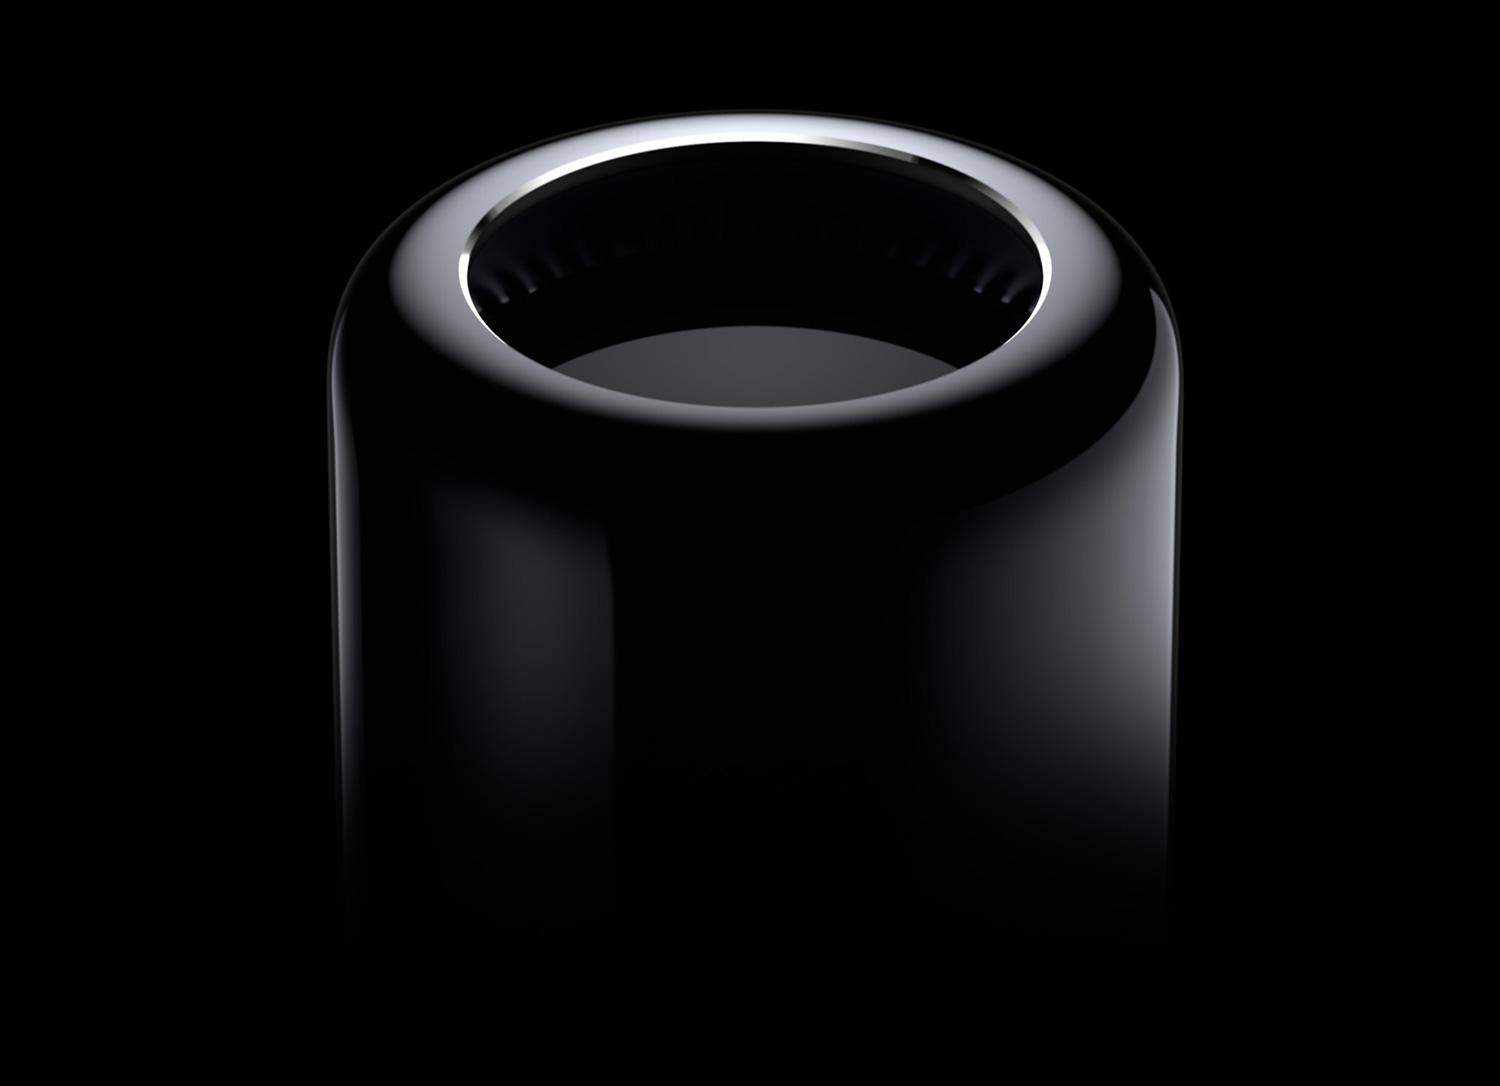 The Mac Pro is now slightly better.